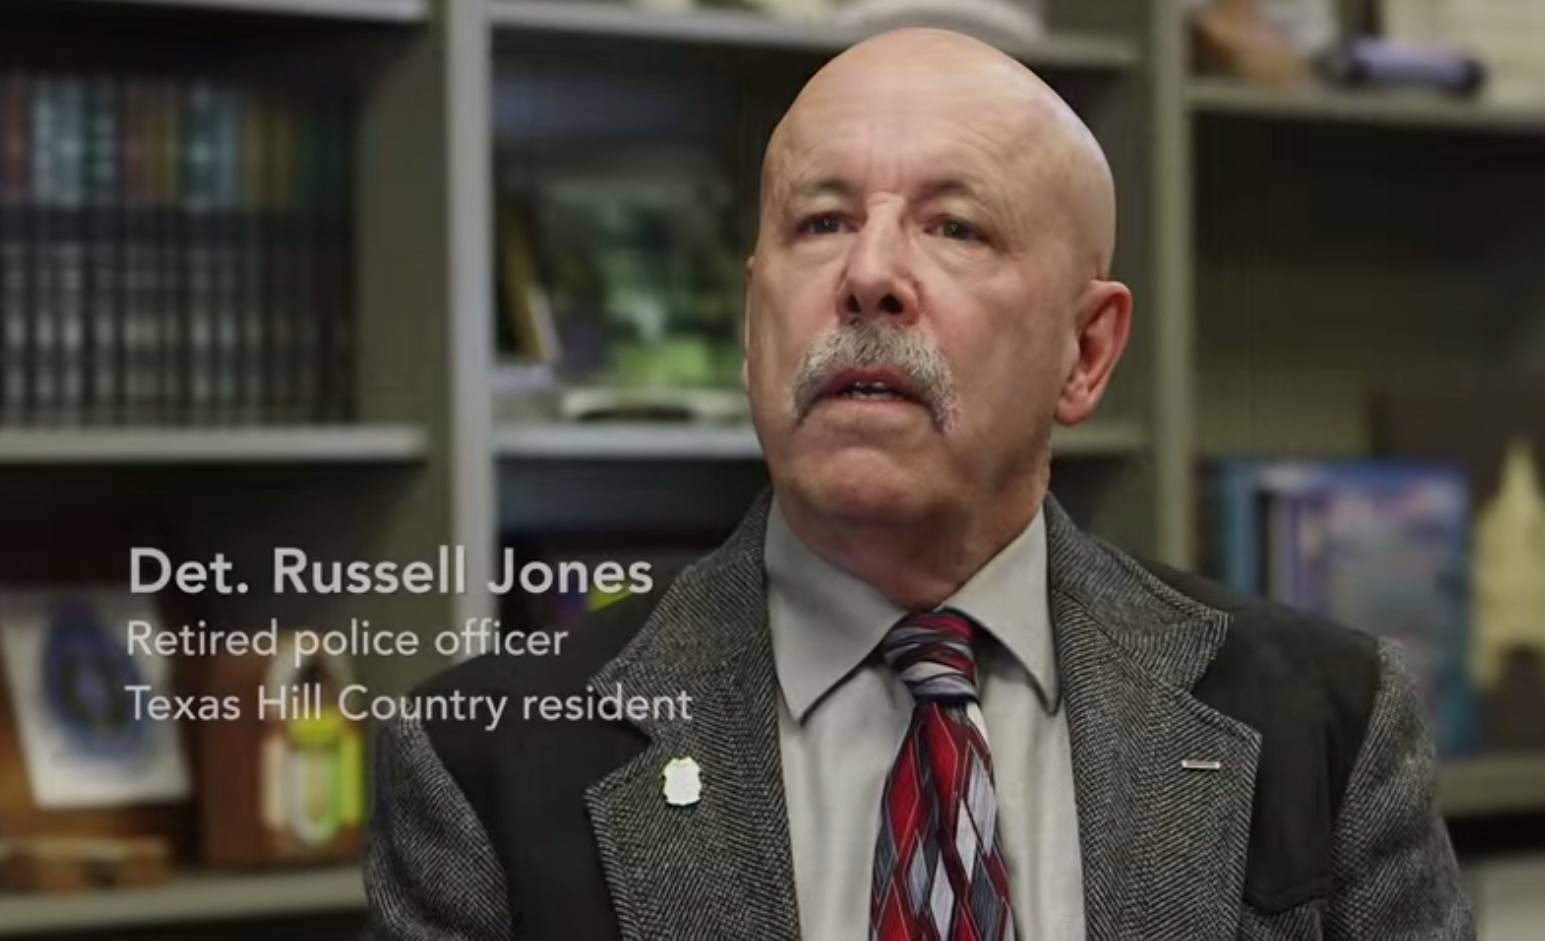 Image of Russel Jones, a retired police officer that supports Responsible Marijuana Policy